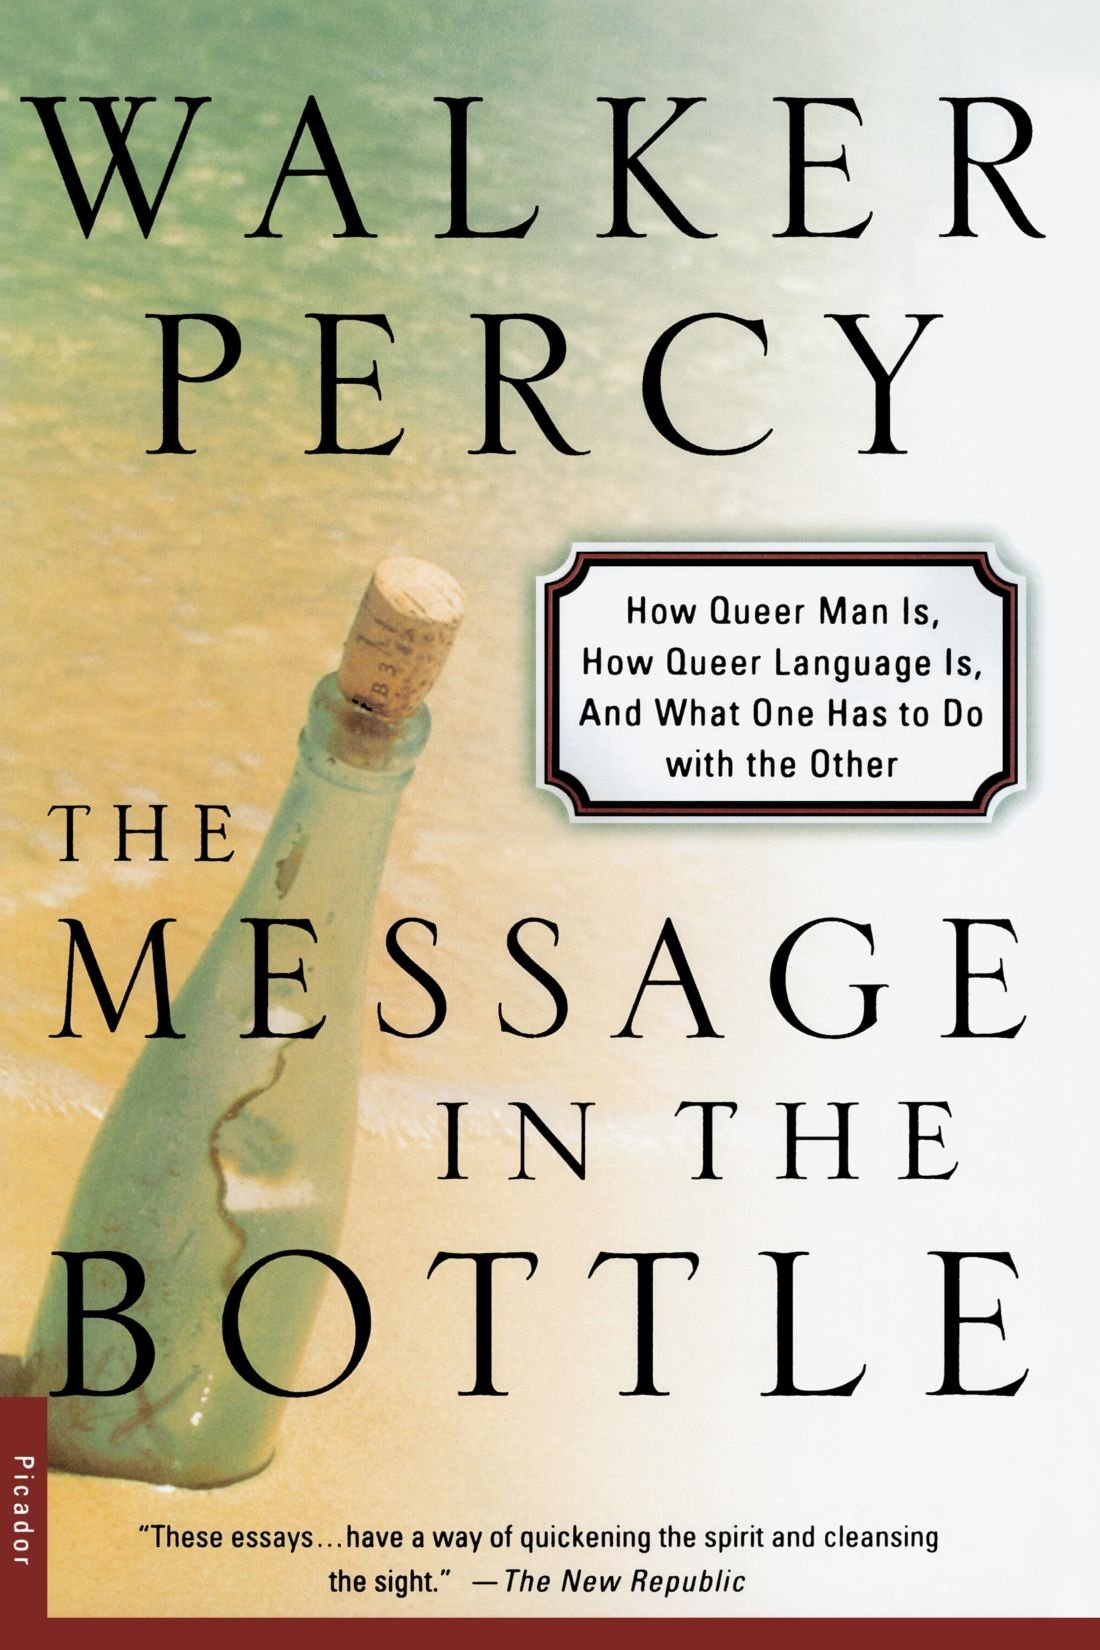 The Message in the Bottle: How Queer Man Is, How Queer Language Is, and What One Has to Do with the Other by Picador